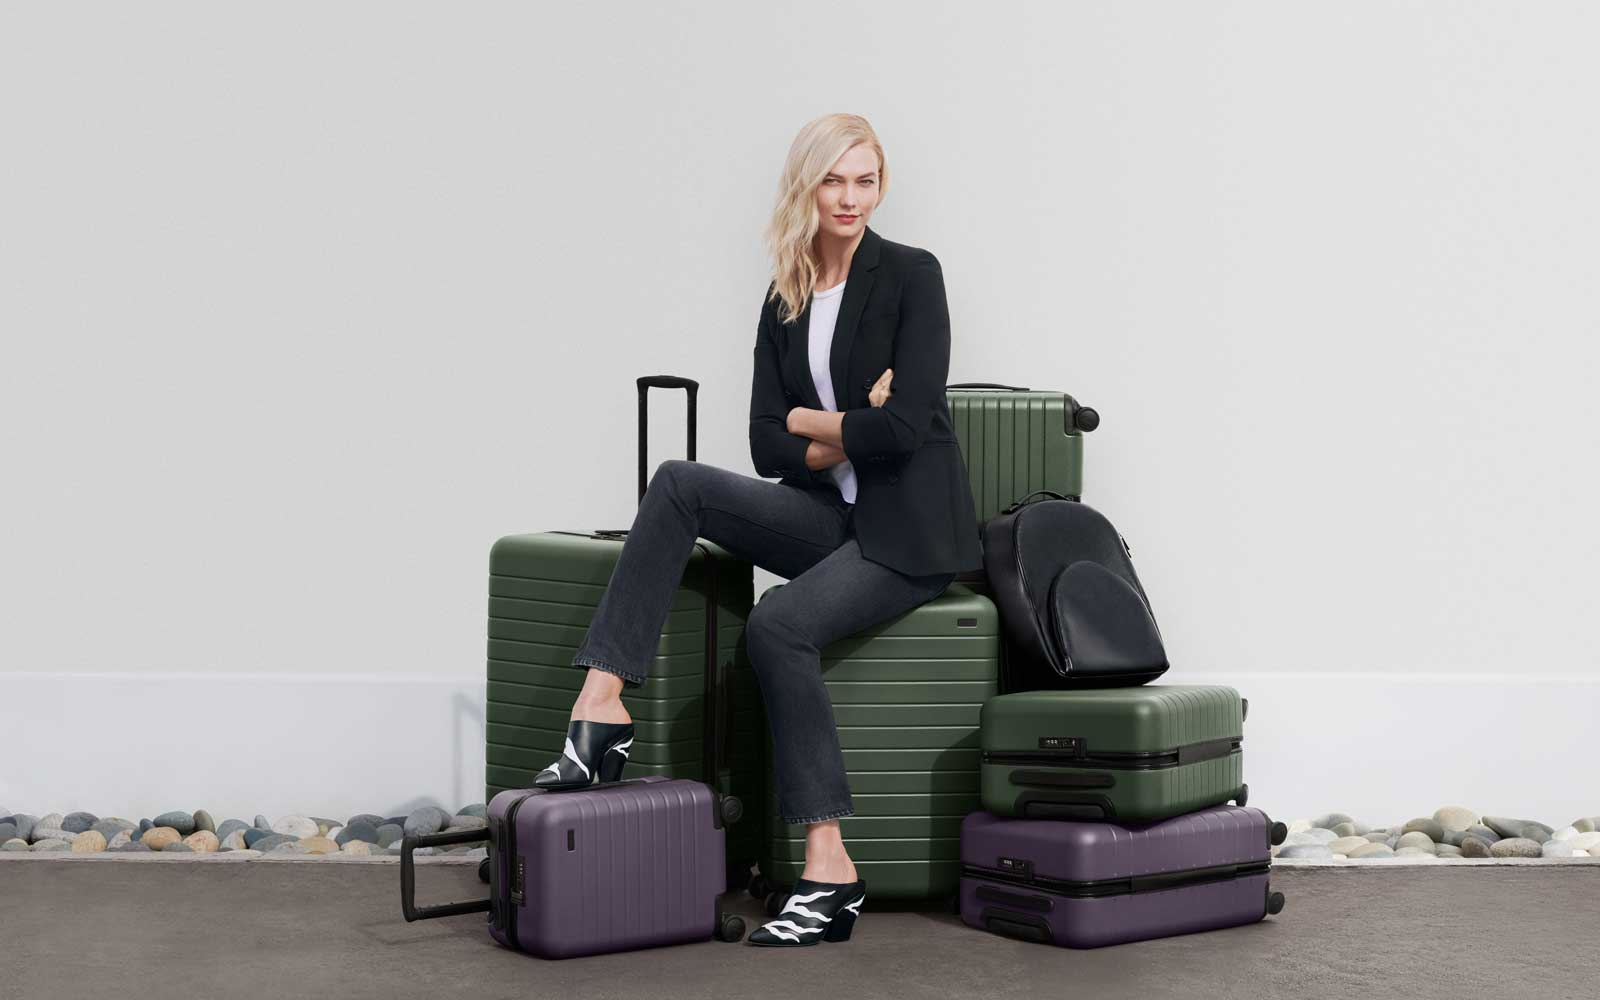 Karlie Kloss Has a New Away Luggage Collection